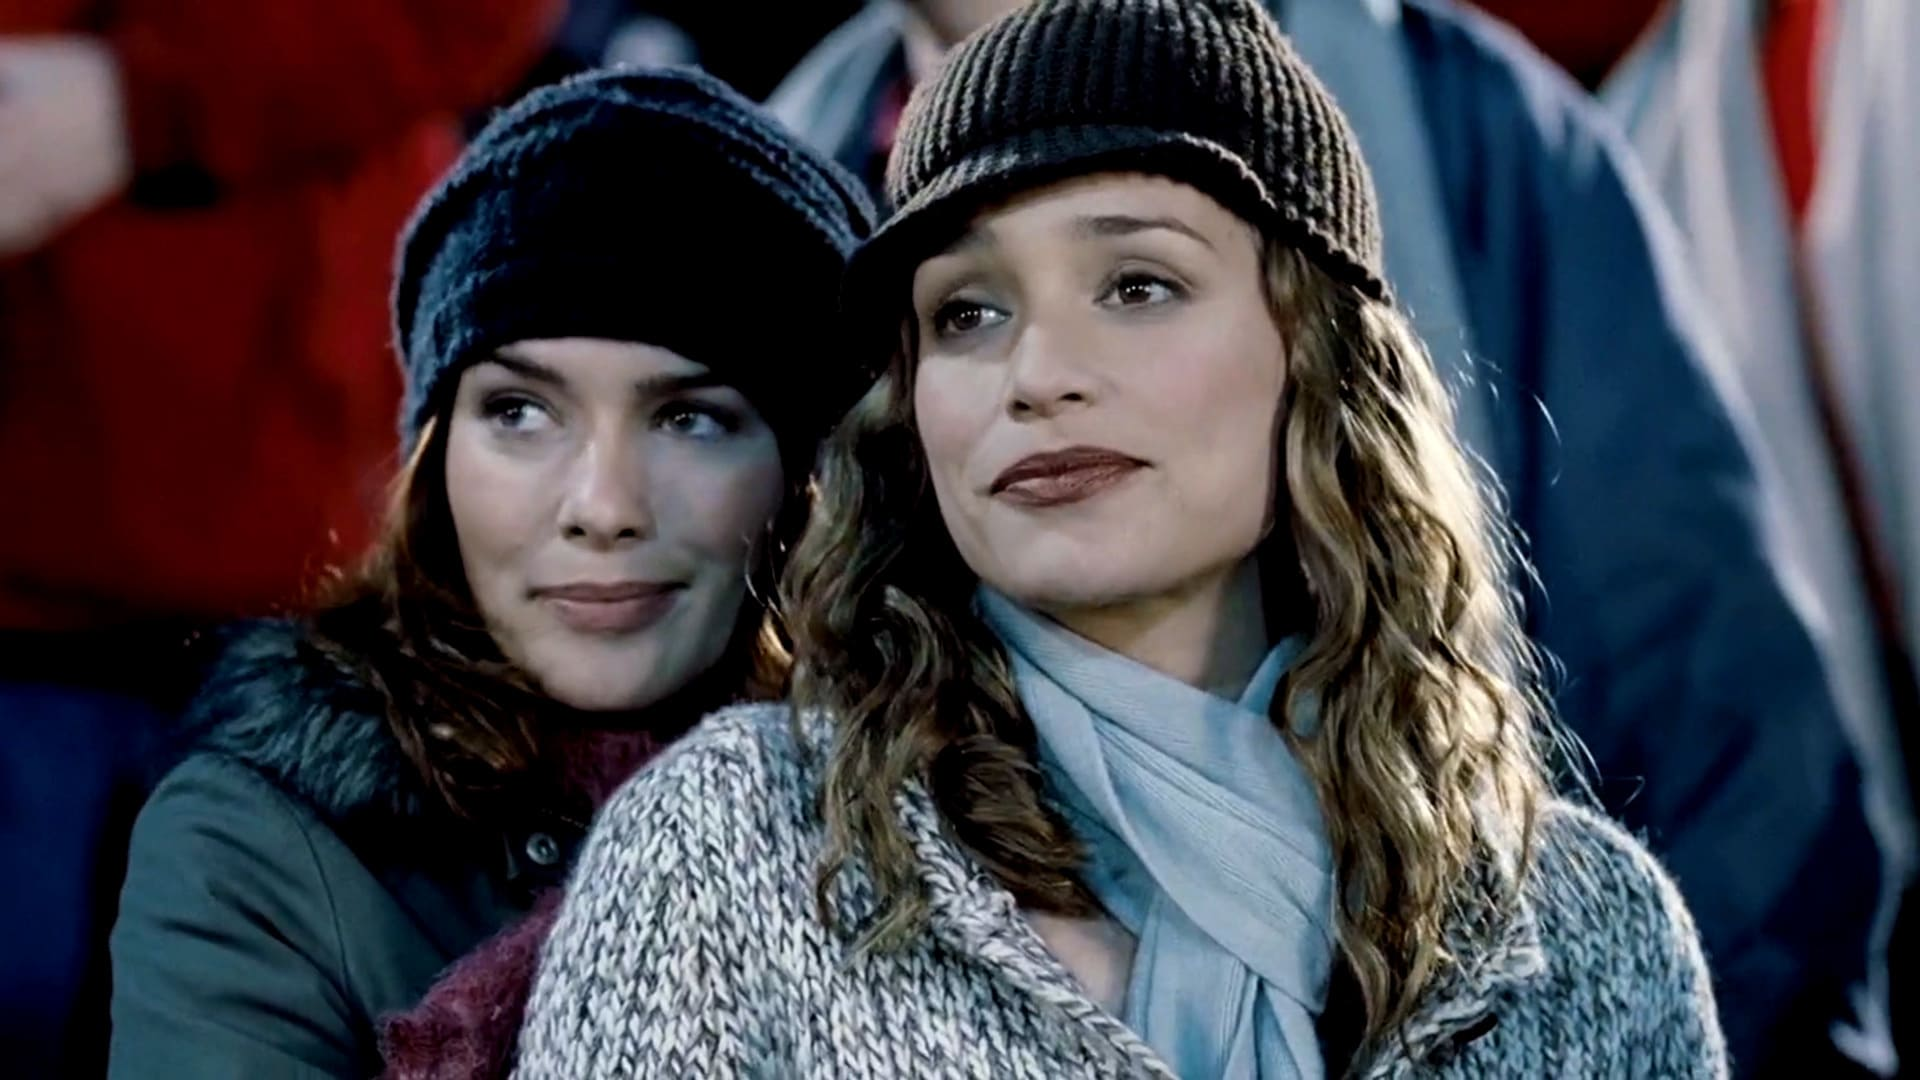 Luce (left) and Rachel (right)